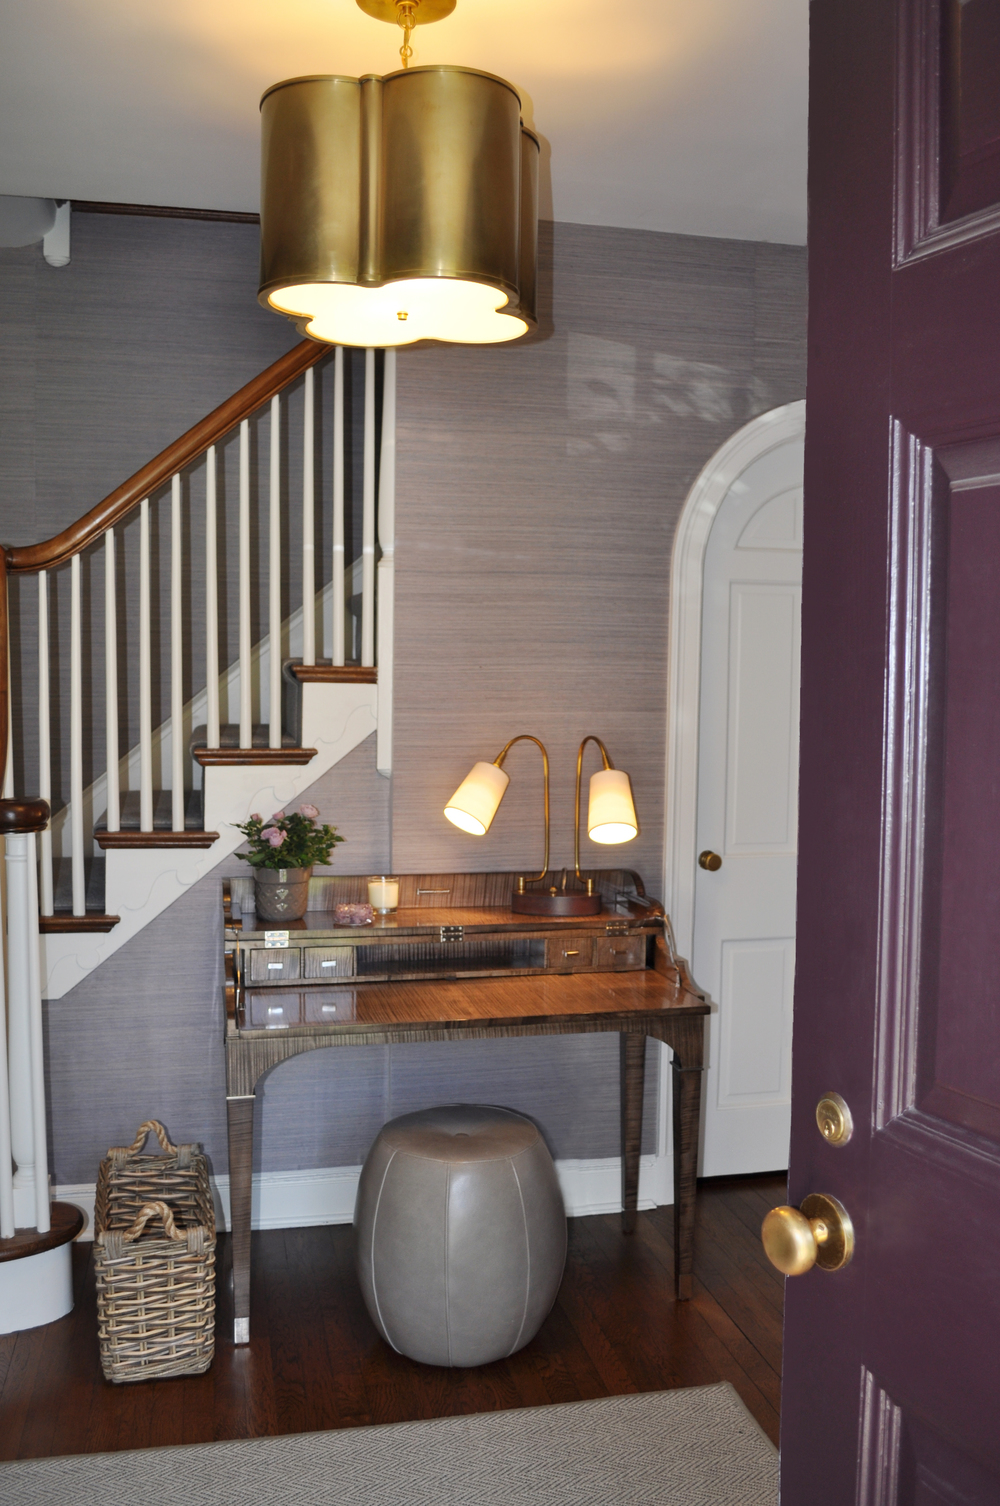 Foyer_Plum Front Door_Phillip Jeffries Hudson Haze Grasscloth Wallcovering_Entry Desk_Ballard Design Leather Pouf_Interior Designer Kim A Mitchell_KAM DESIGN_2016.jpg